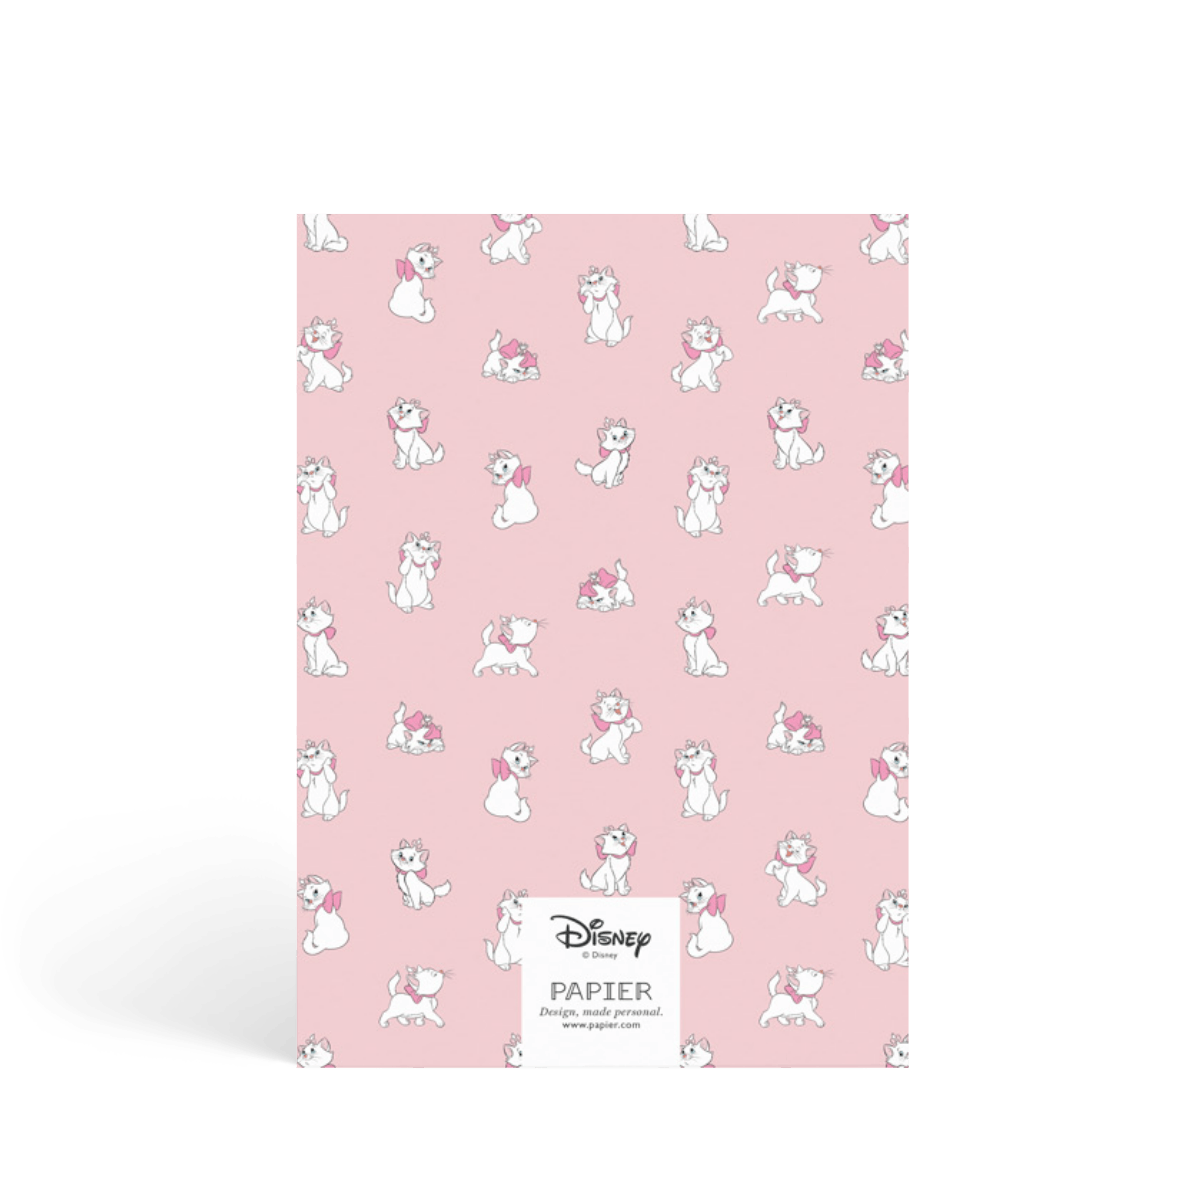 Https%3a%2f%2fwww.papier.com%2fproduct image%2f51313%2f5%2fmarie aristocats 12567 arriere 1567432370.png?ixlib=rb 1.1